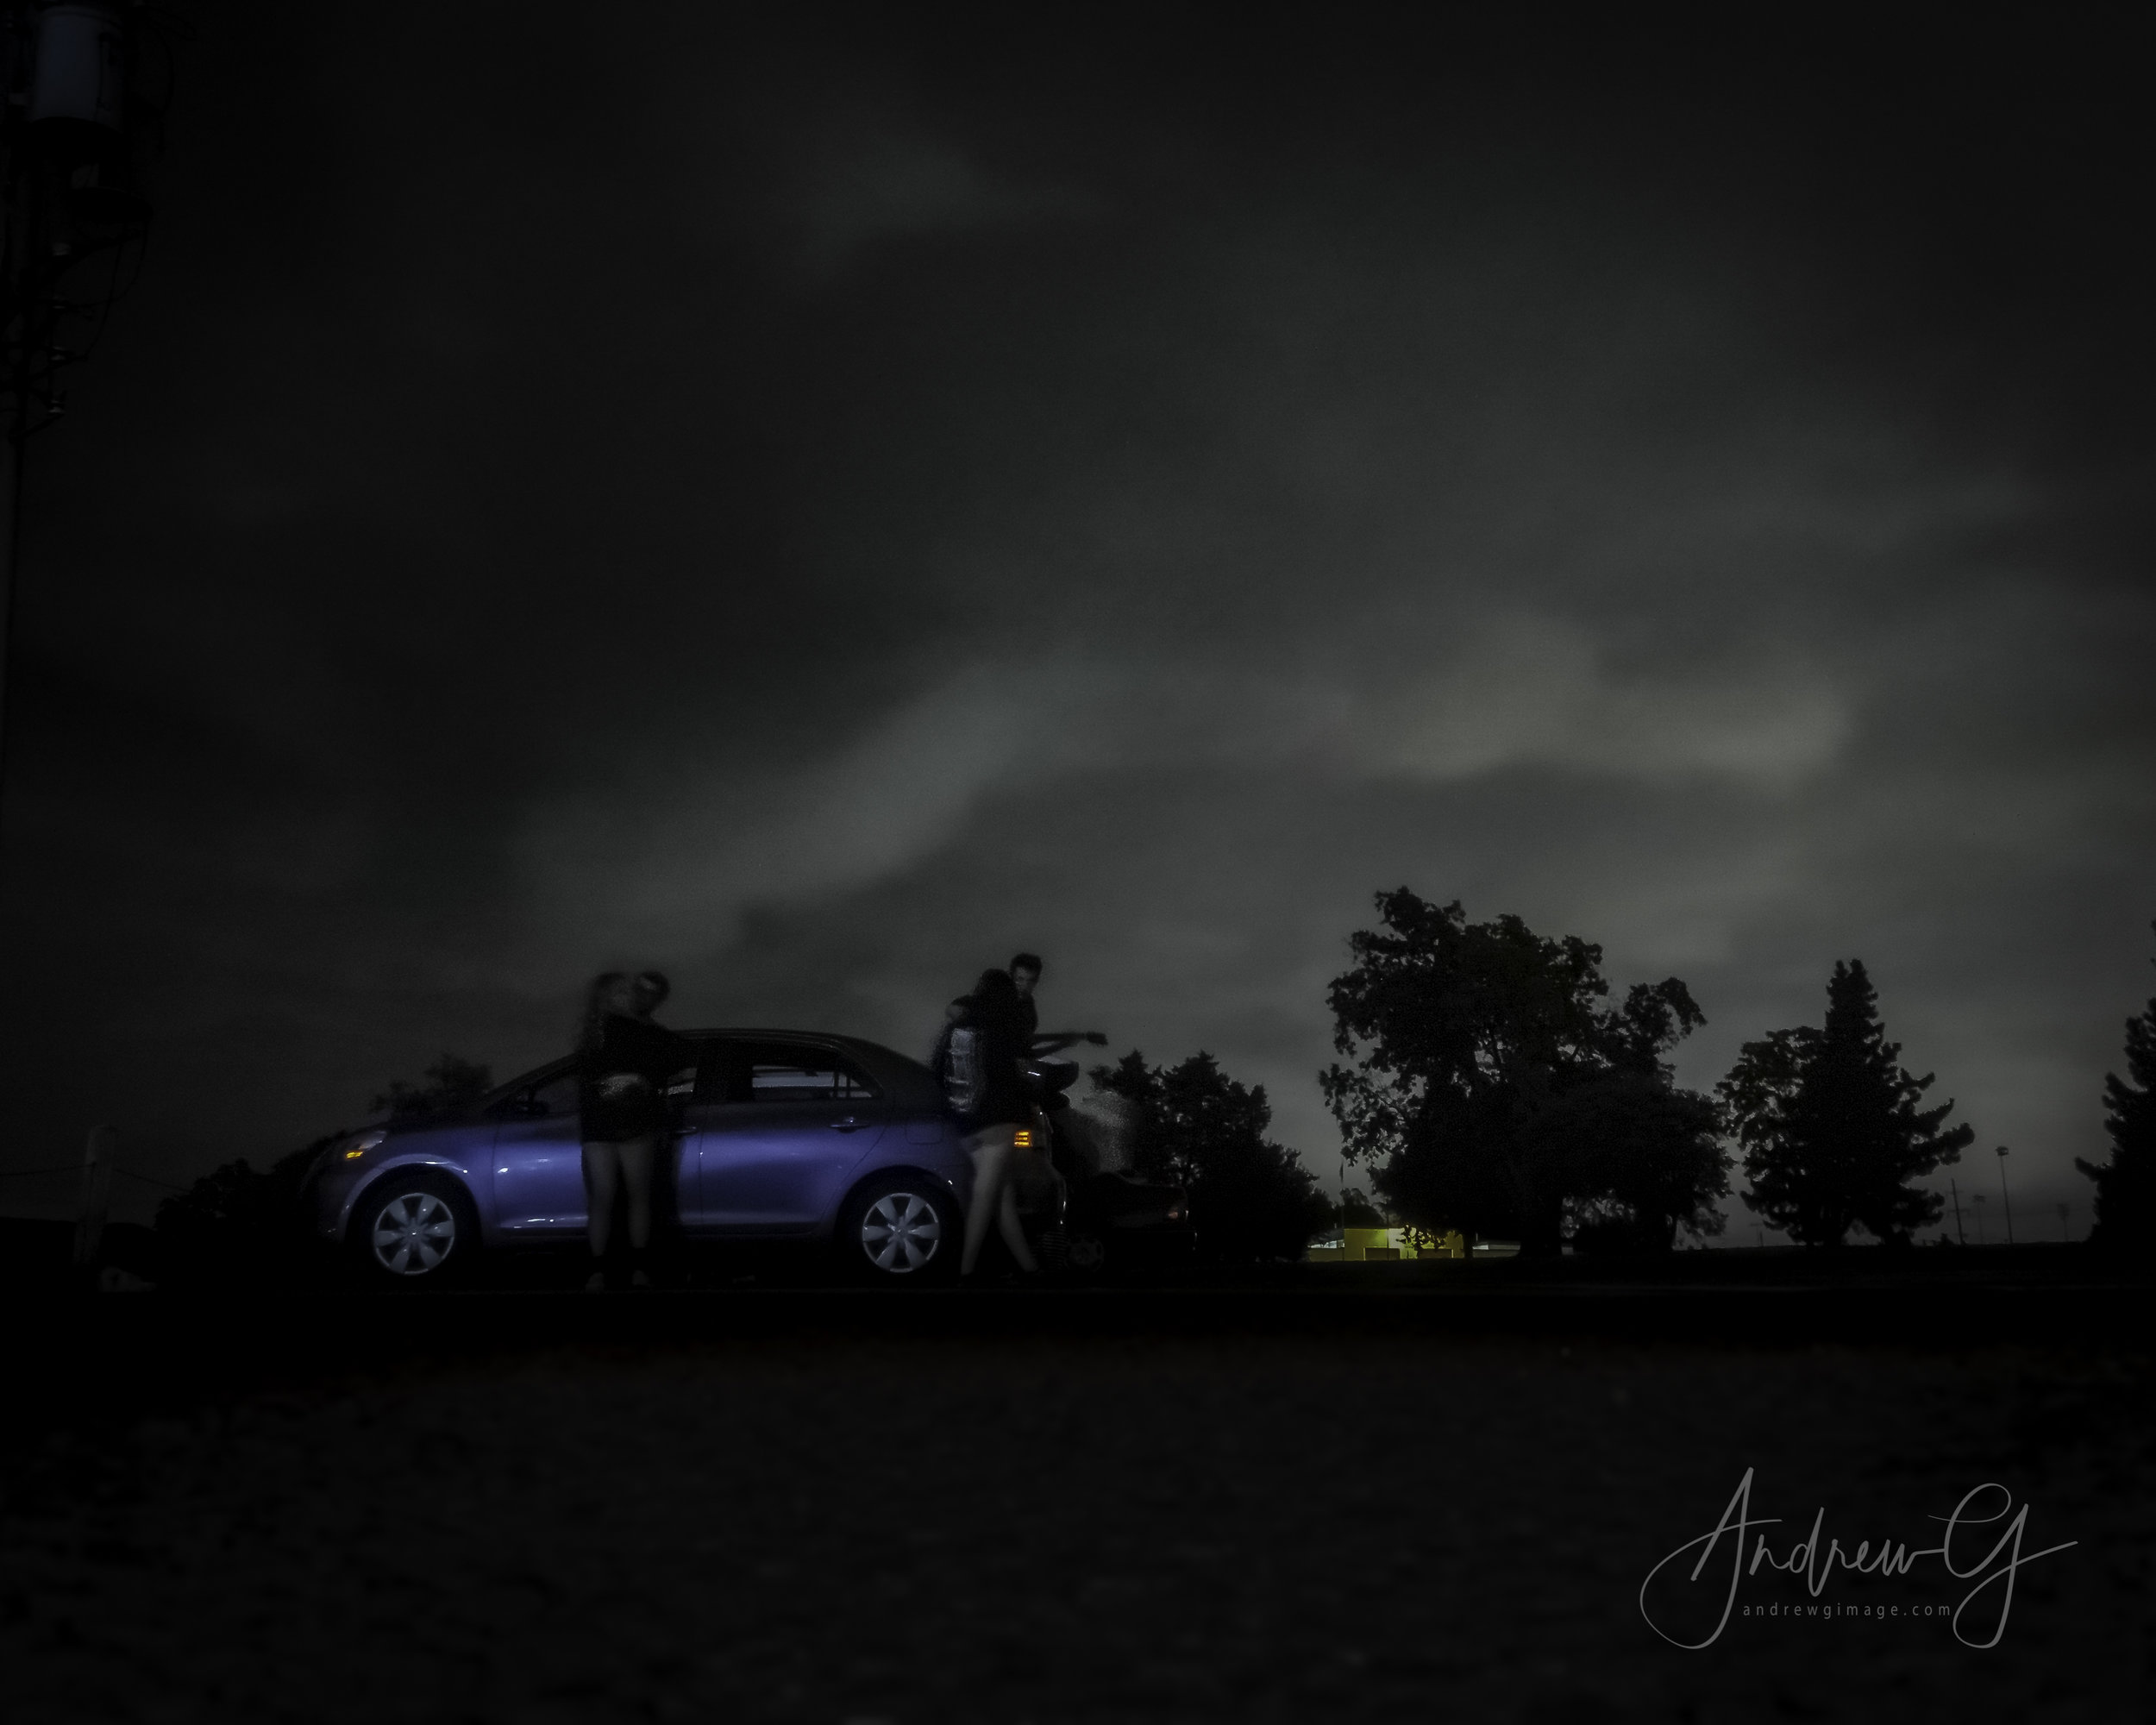 friends together 01 | stormy night sky | Lake O | OK | ANDREW G 2018 | 4x5 | post ready.jpg